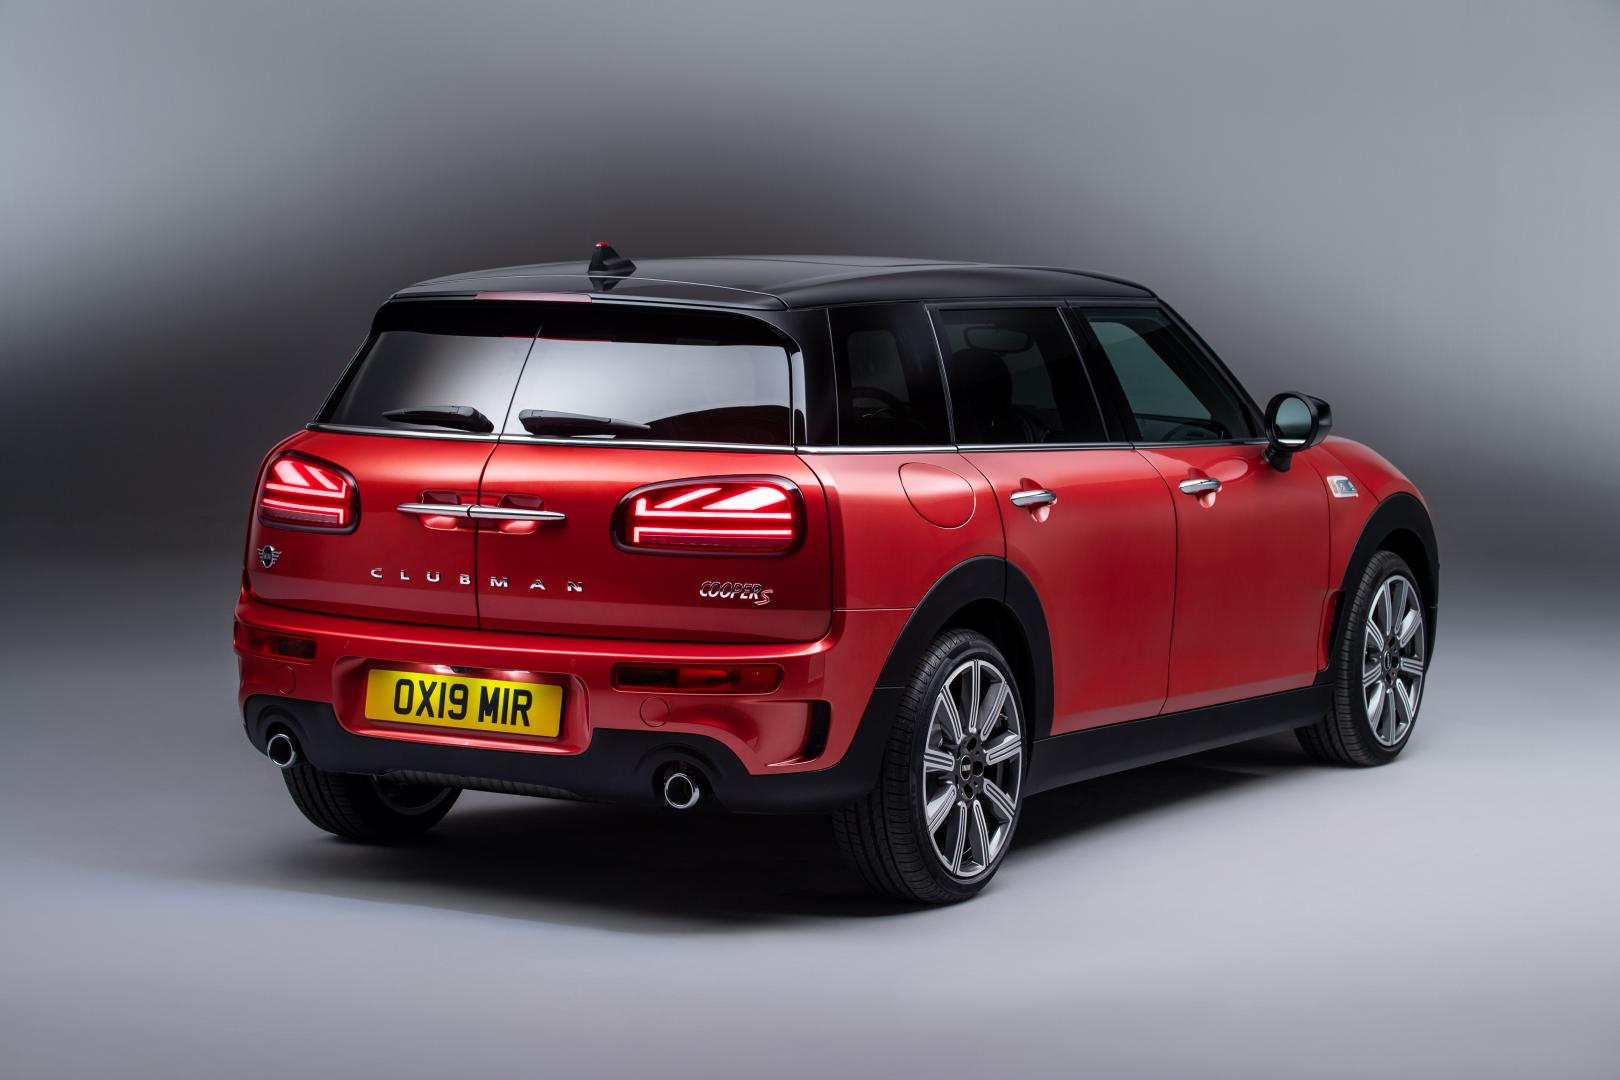 Mini Clubman Facelift 2019 deur kofferbak